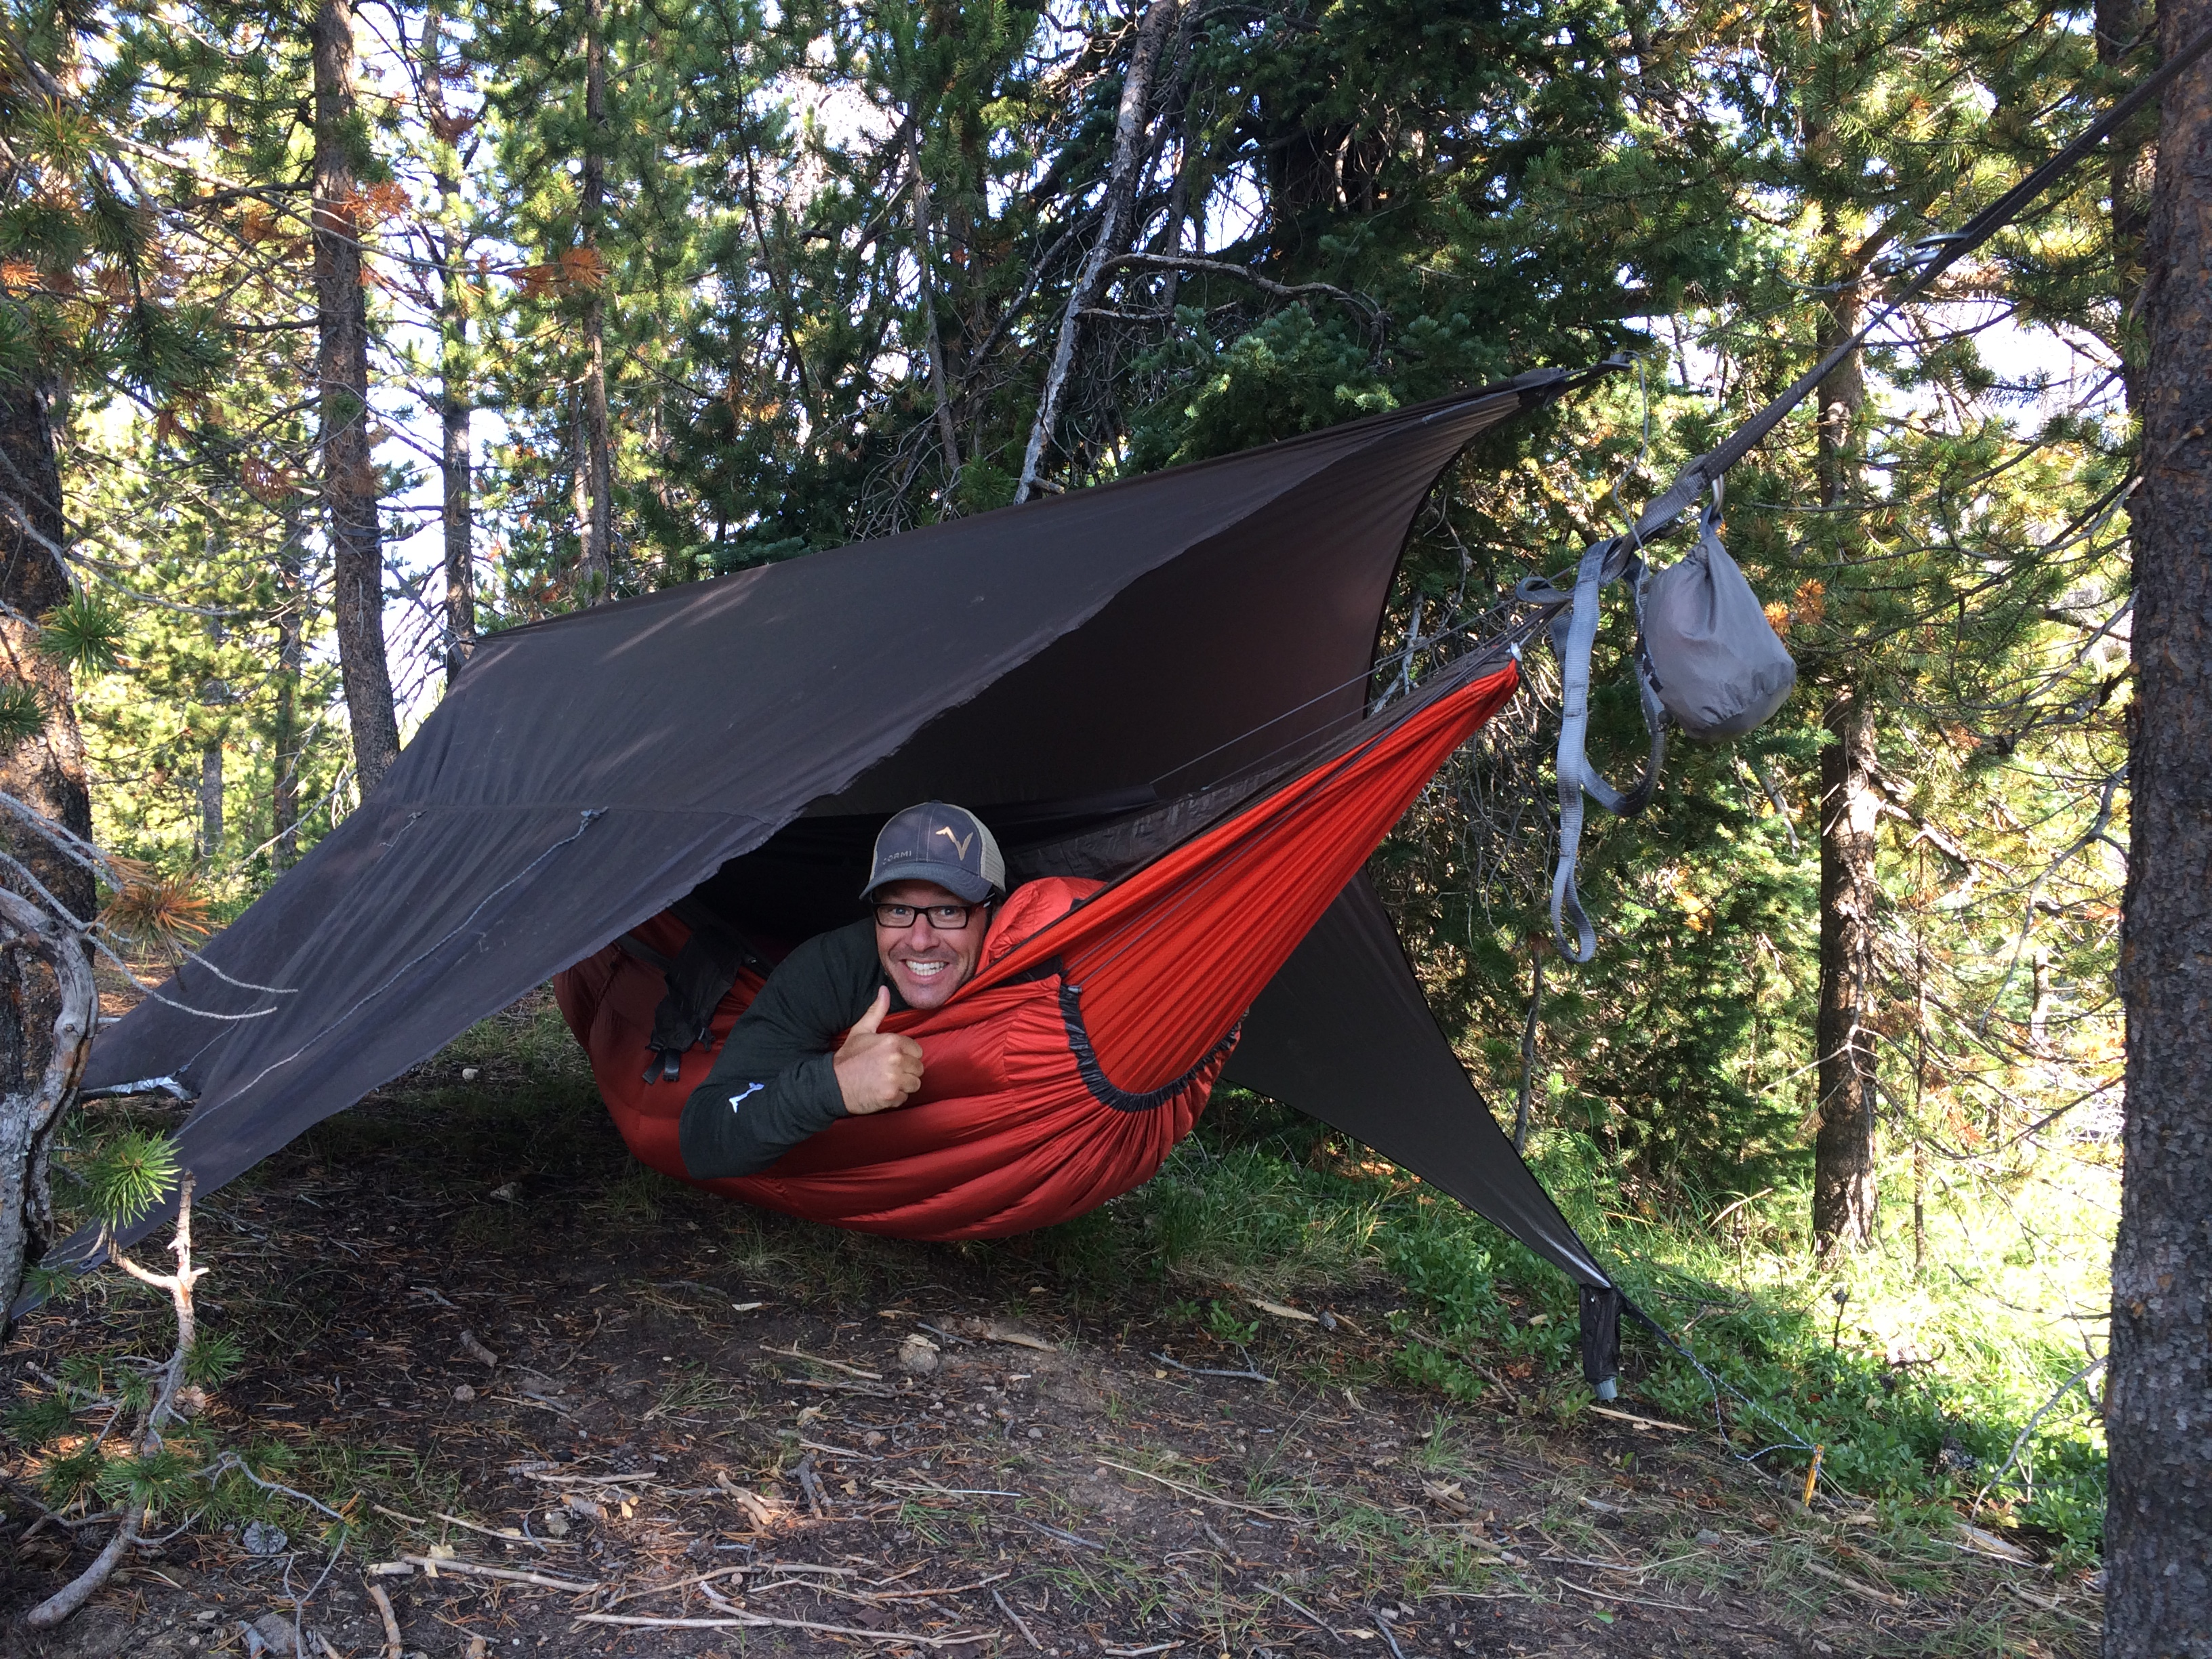 Exploring Opportunities To Have A Comfortable Hammock